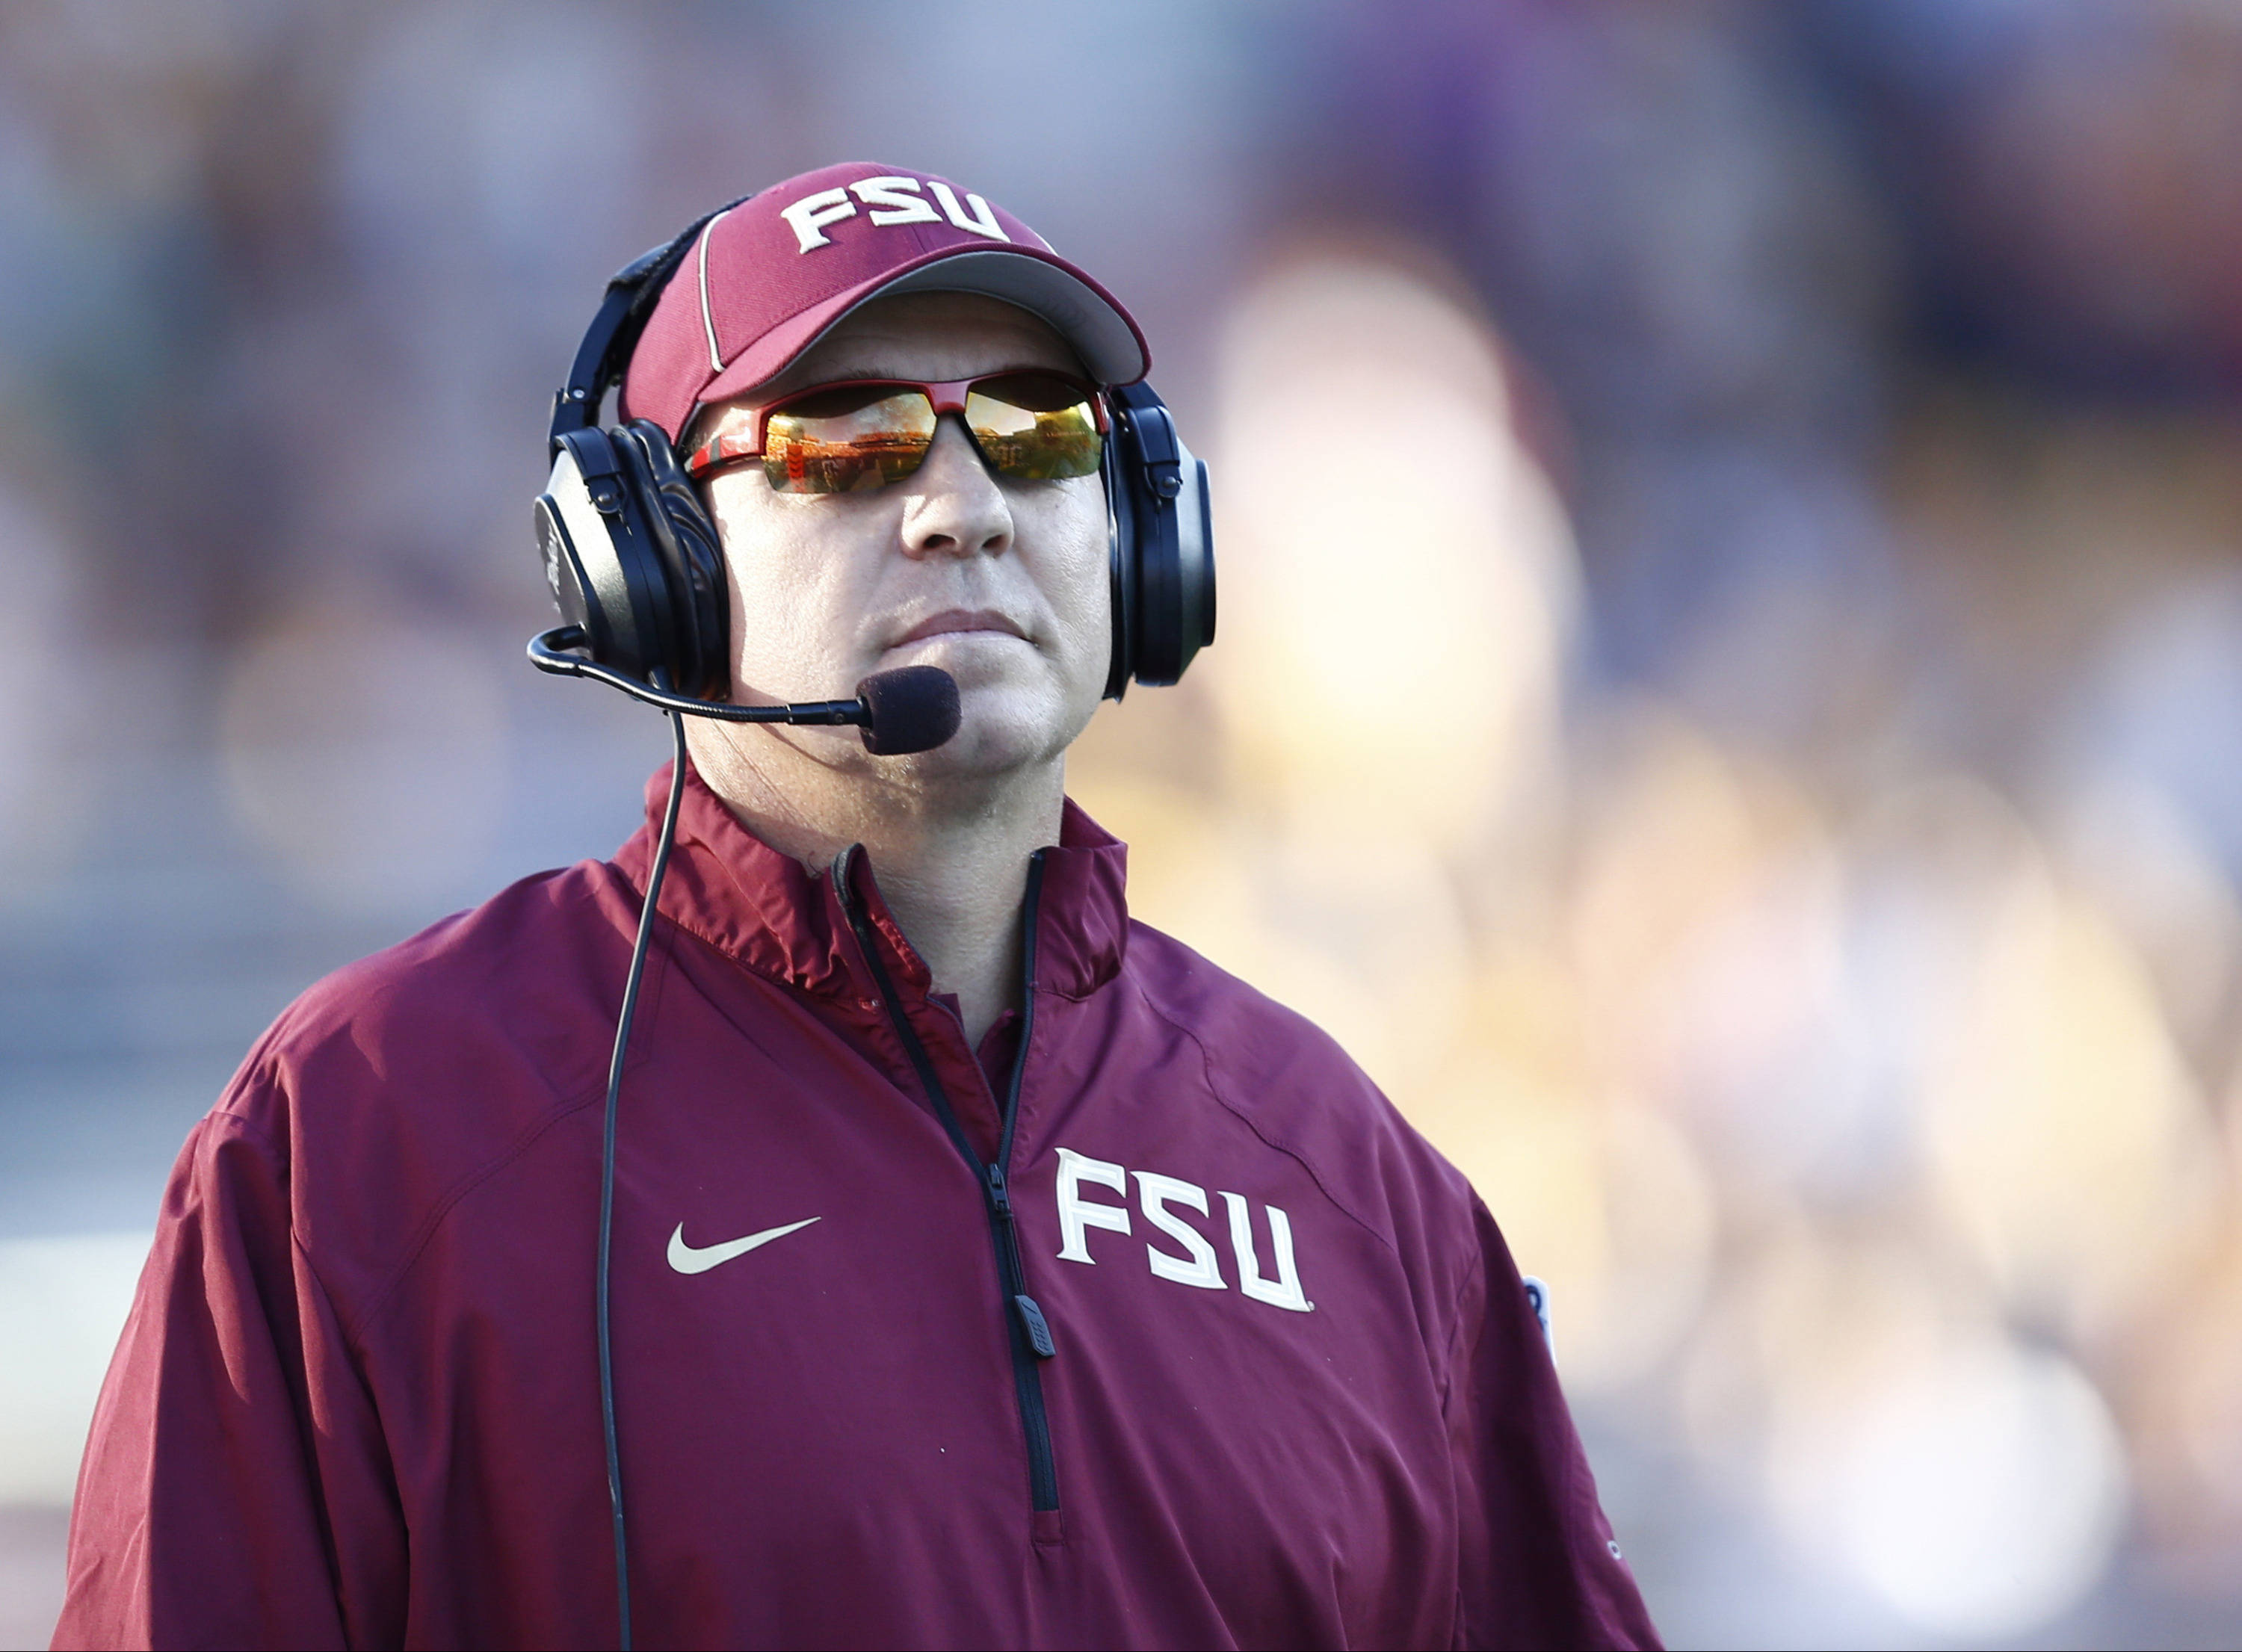 Sep 28, 2013; Boston, MA, USA; Florida State Seminoles head coach Jimbo Fisher during the first half of a game against the Boston College Eagles at Alumni Stadium. Mandatory Credit: Mark L. Baer-USA TODAY Sports